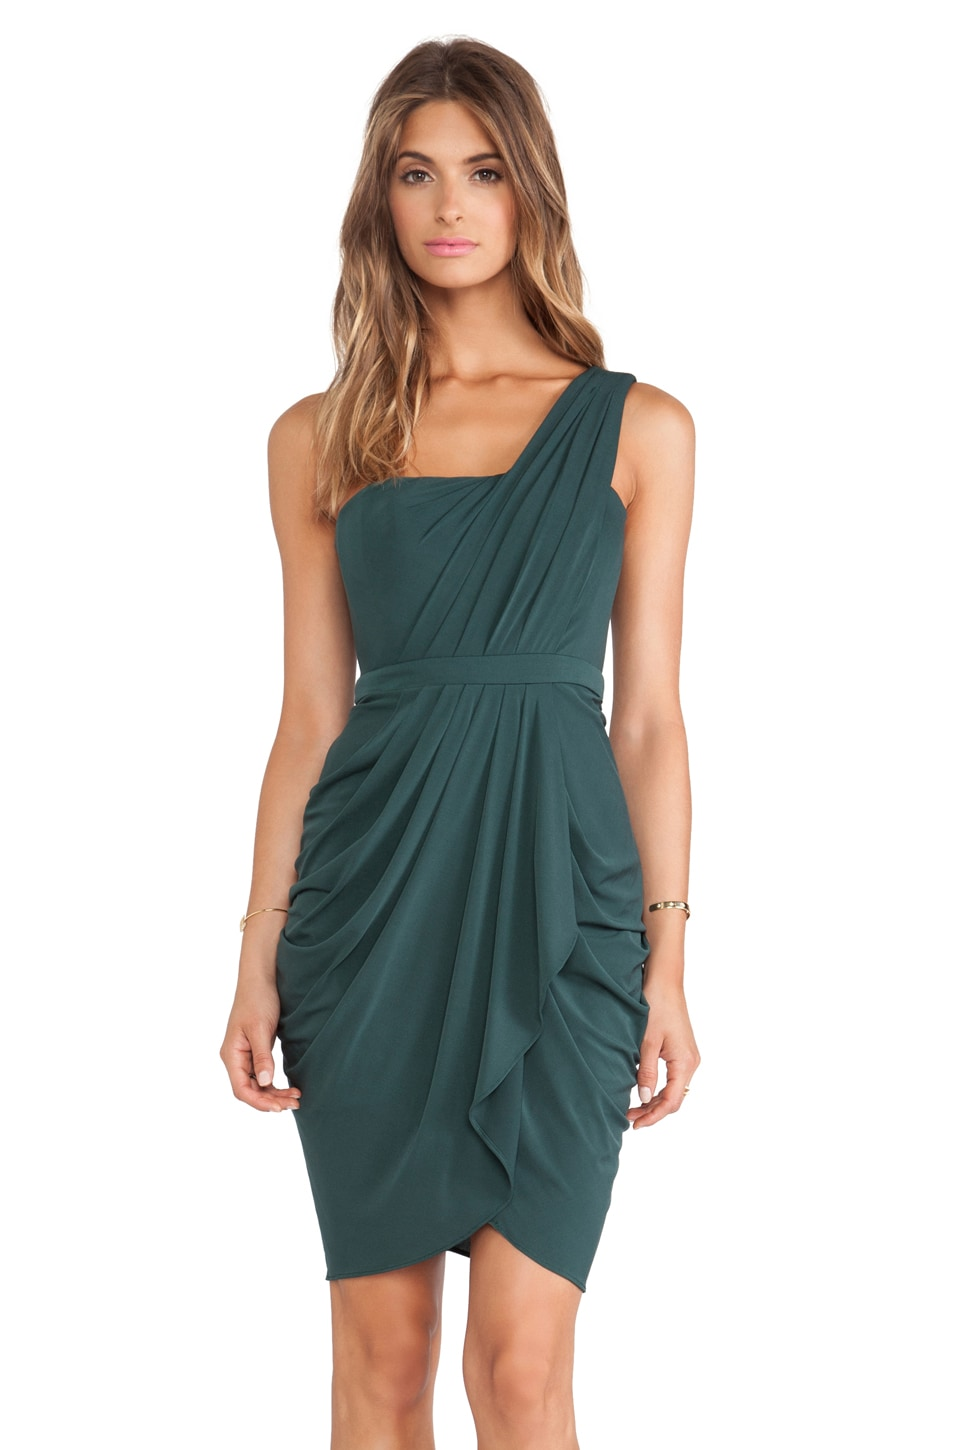 BCBGMAXAZRIA Julieta One Shoulder Dress in Fern